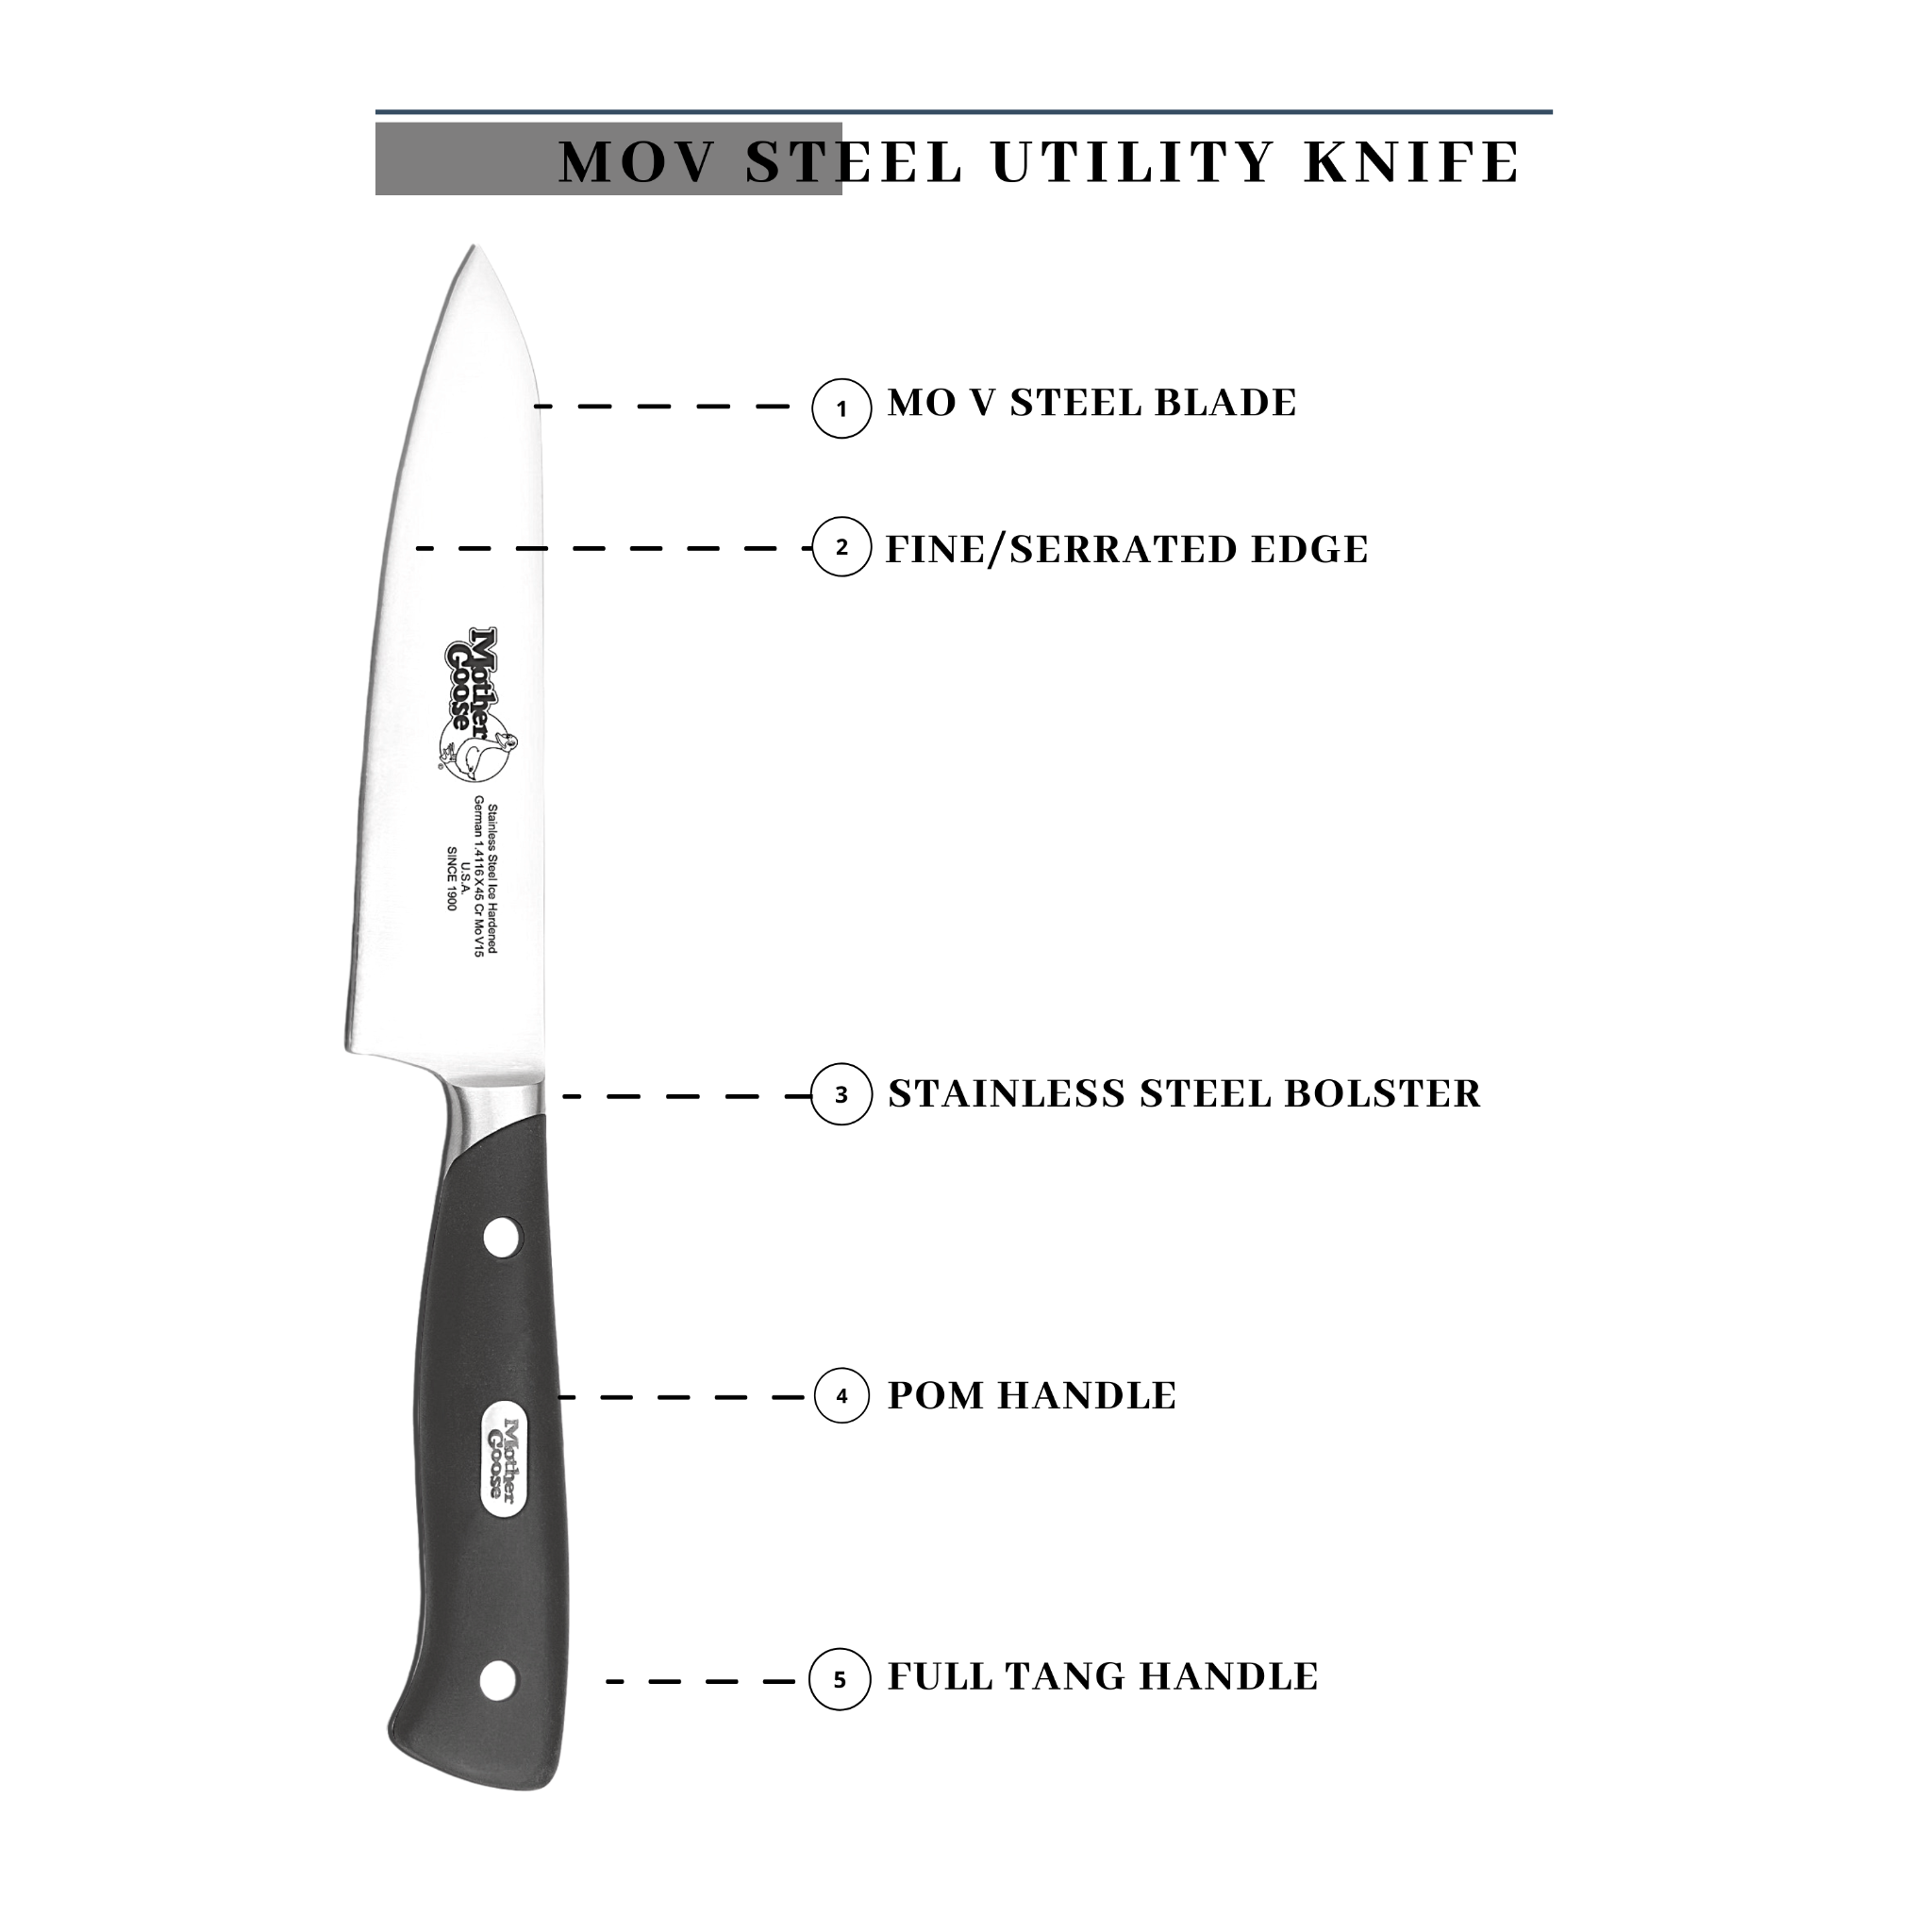 MOV STEEL UTILITY KNIFE 4.7 INCH